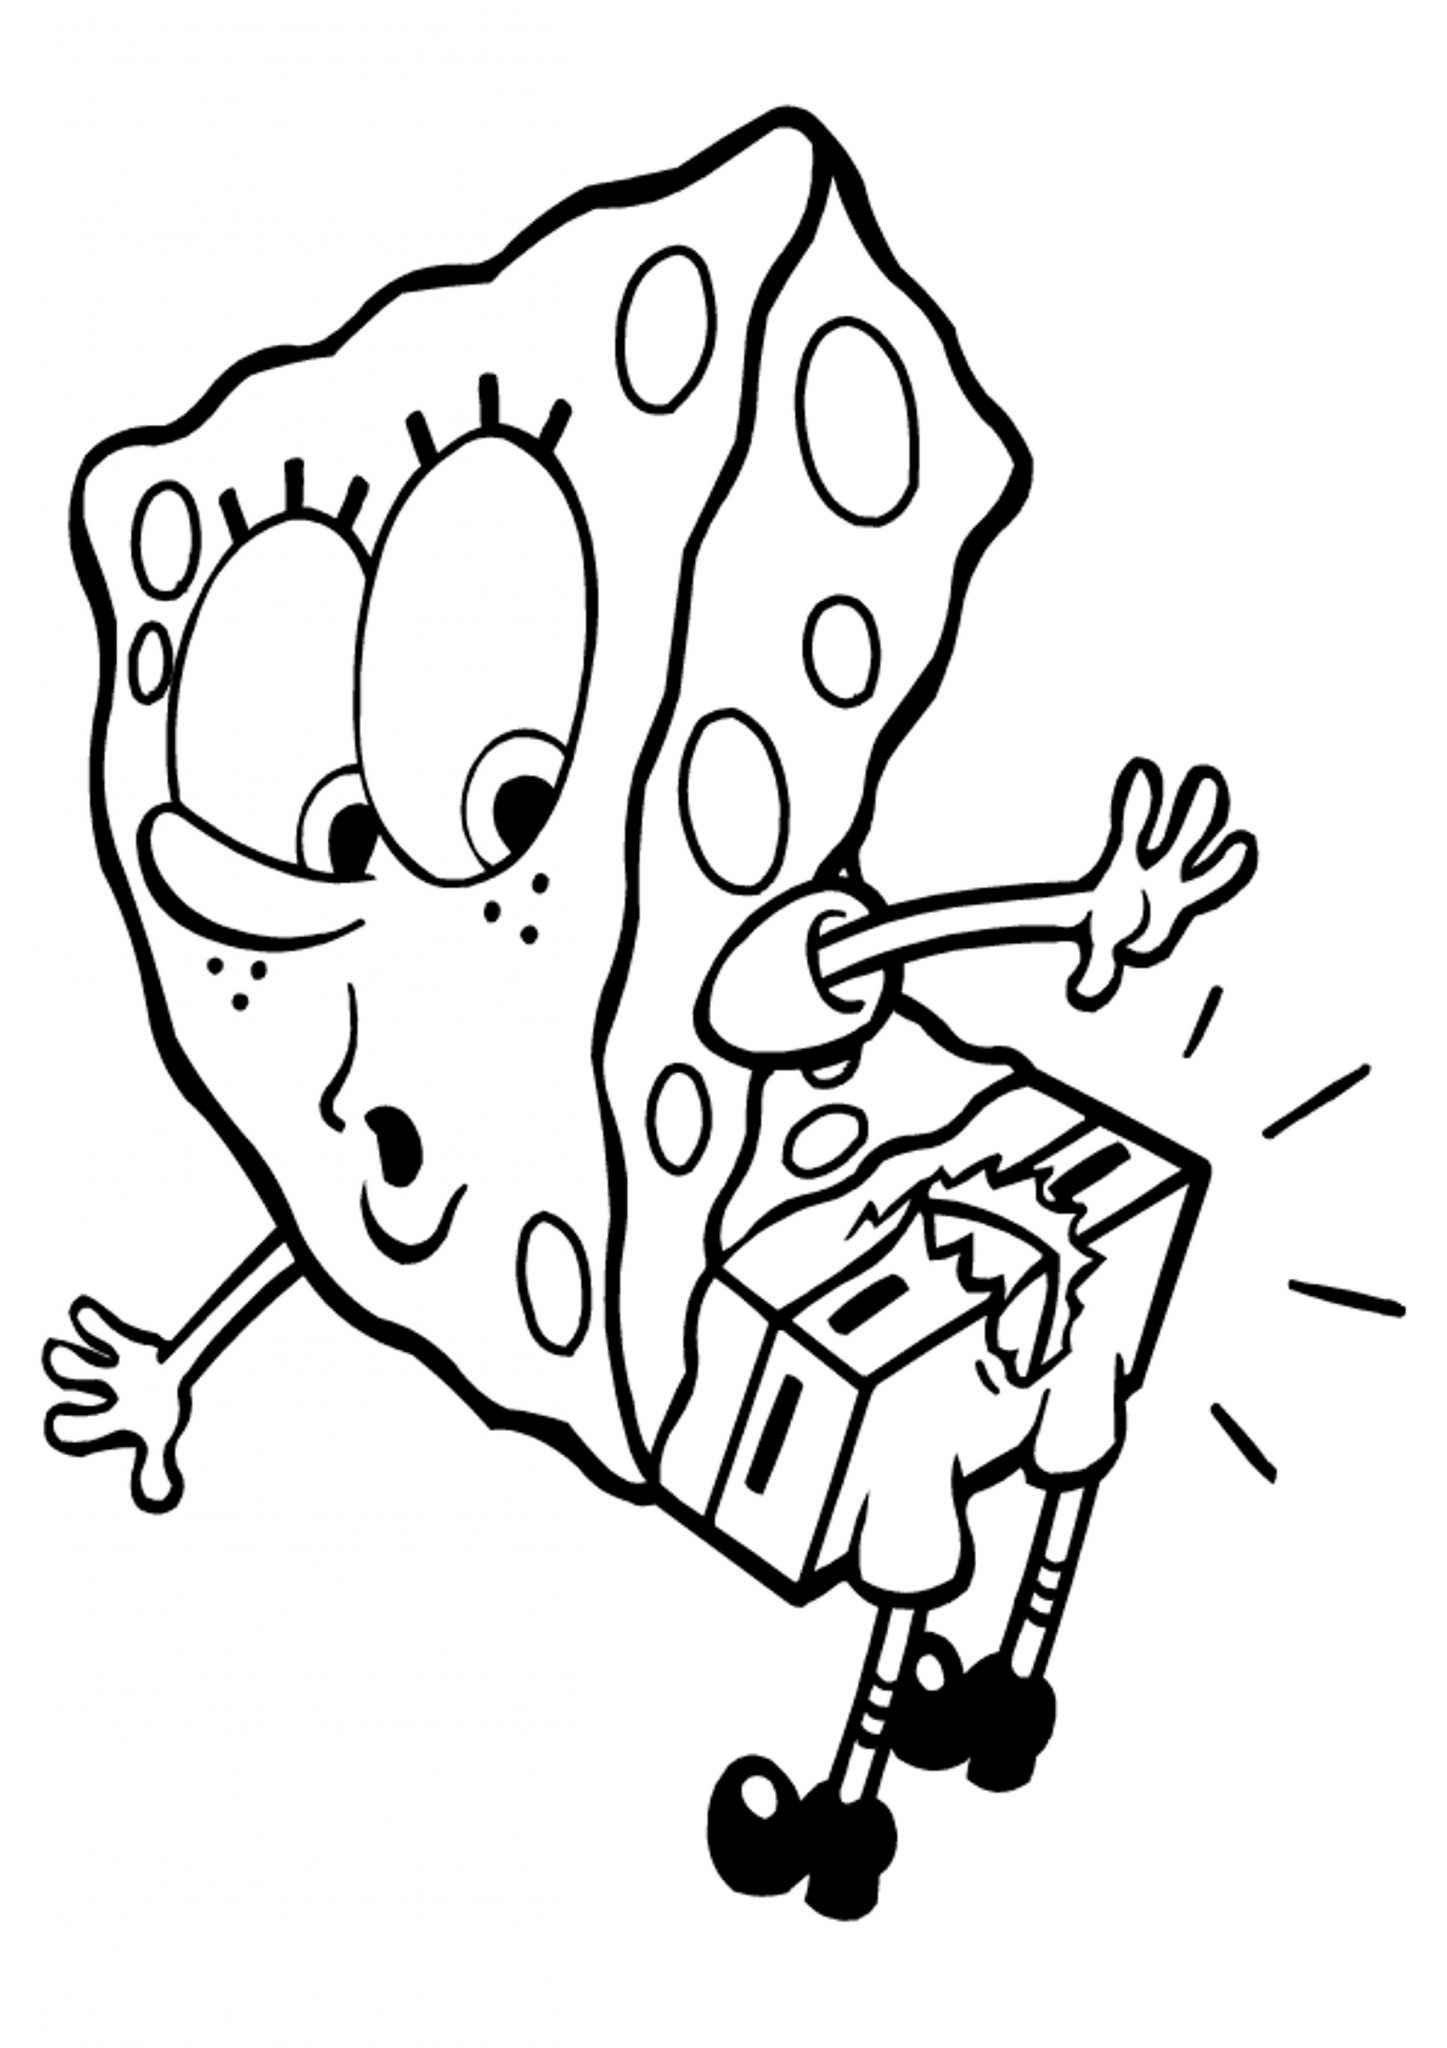 print download choosing spongebob coloring pages for your children